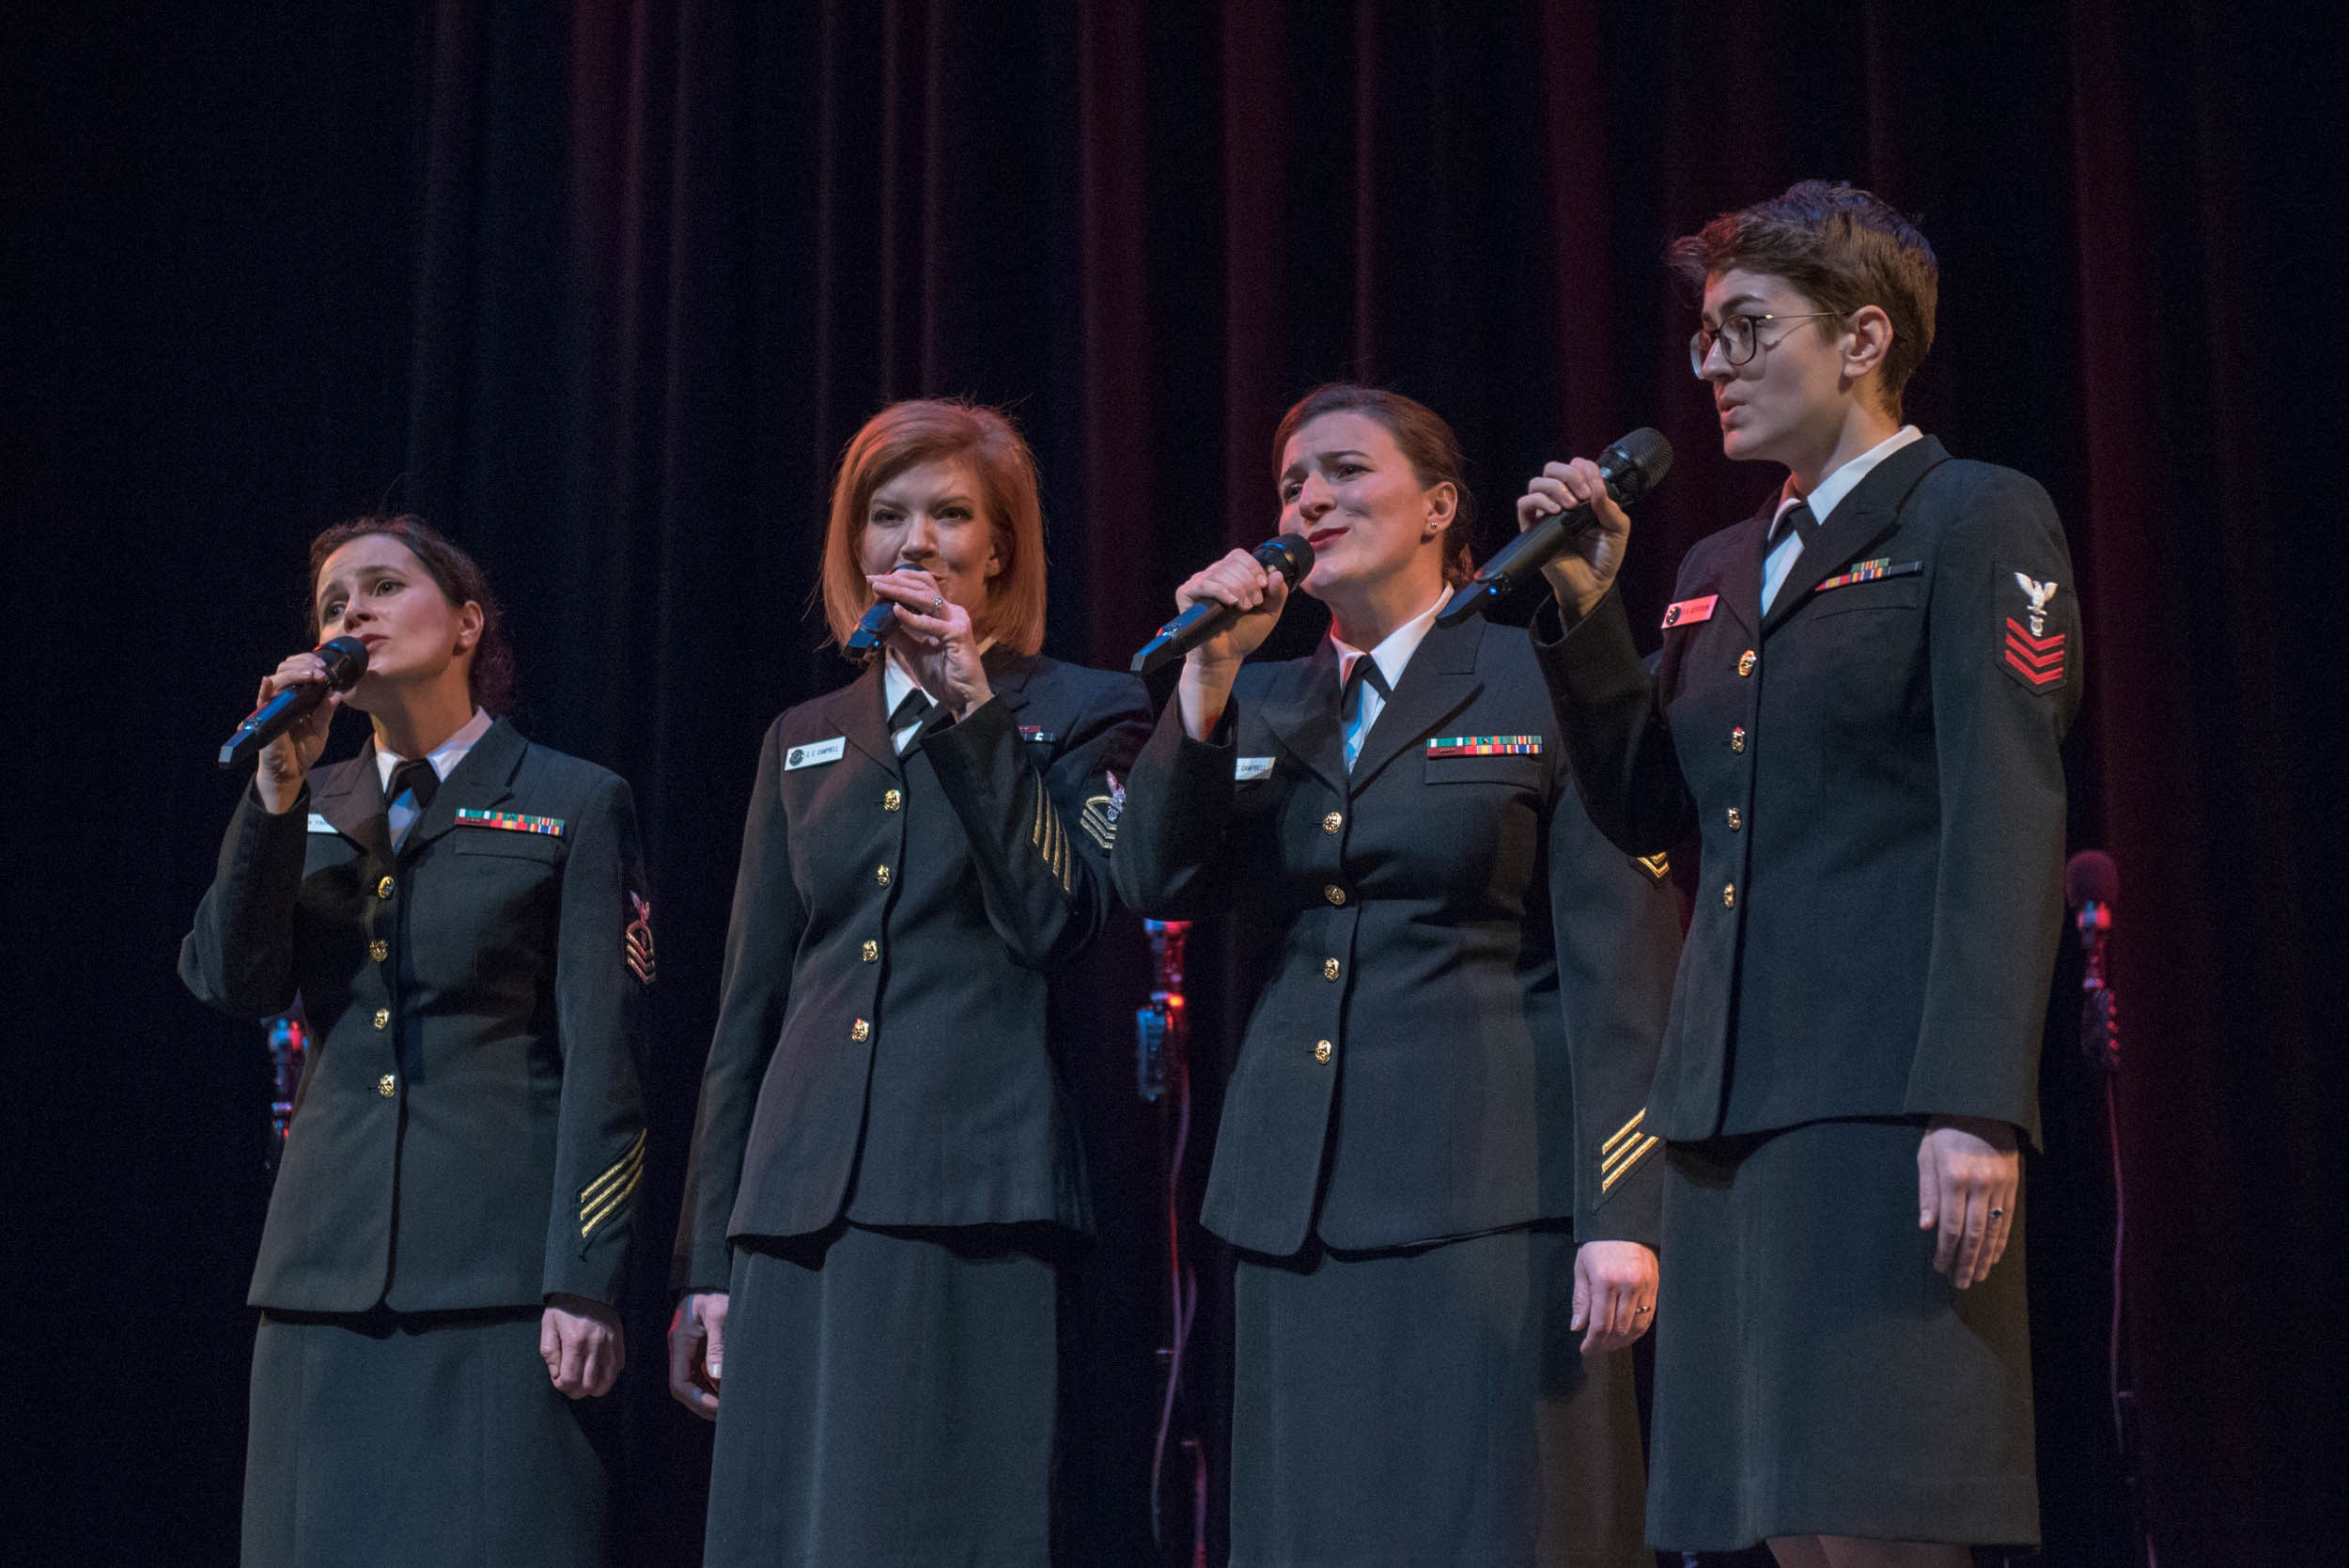 <b>The Anchor Sisters vocal trio specializes in 1940s swing and boogie woogie music made popular by groups like the Andrews Sisters and Boswell Sisters. The performers are members of the Navy's official chorus, the U.S. Navy Band Sea Chanters, based in Washington, D.C.